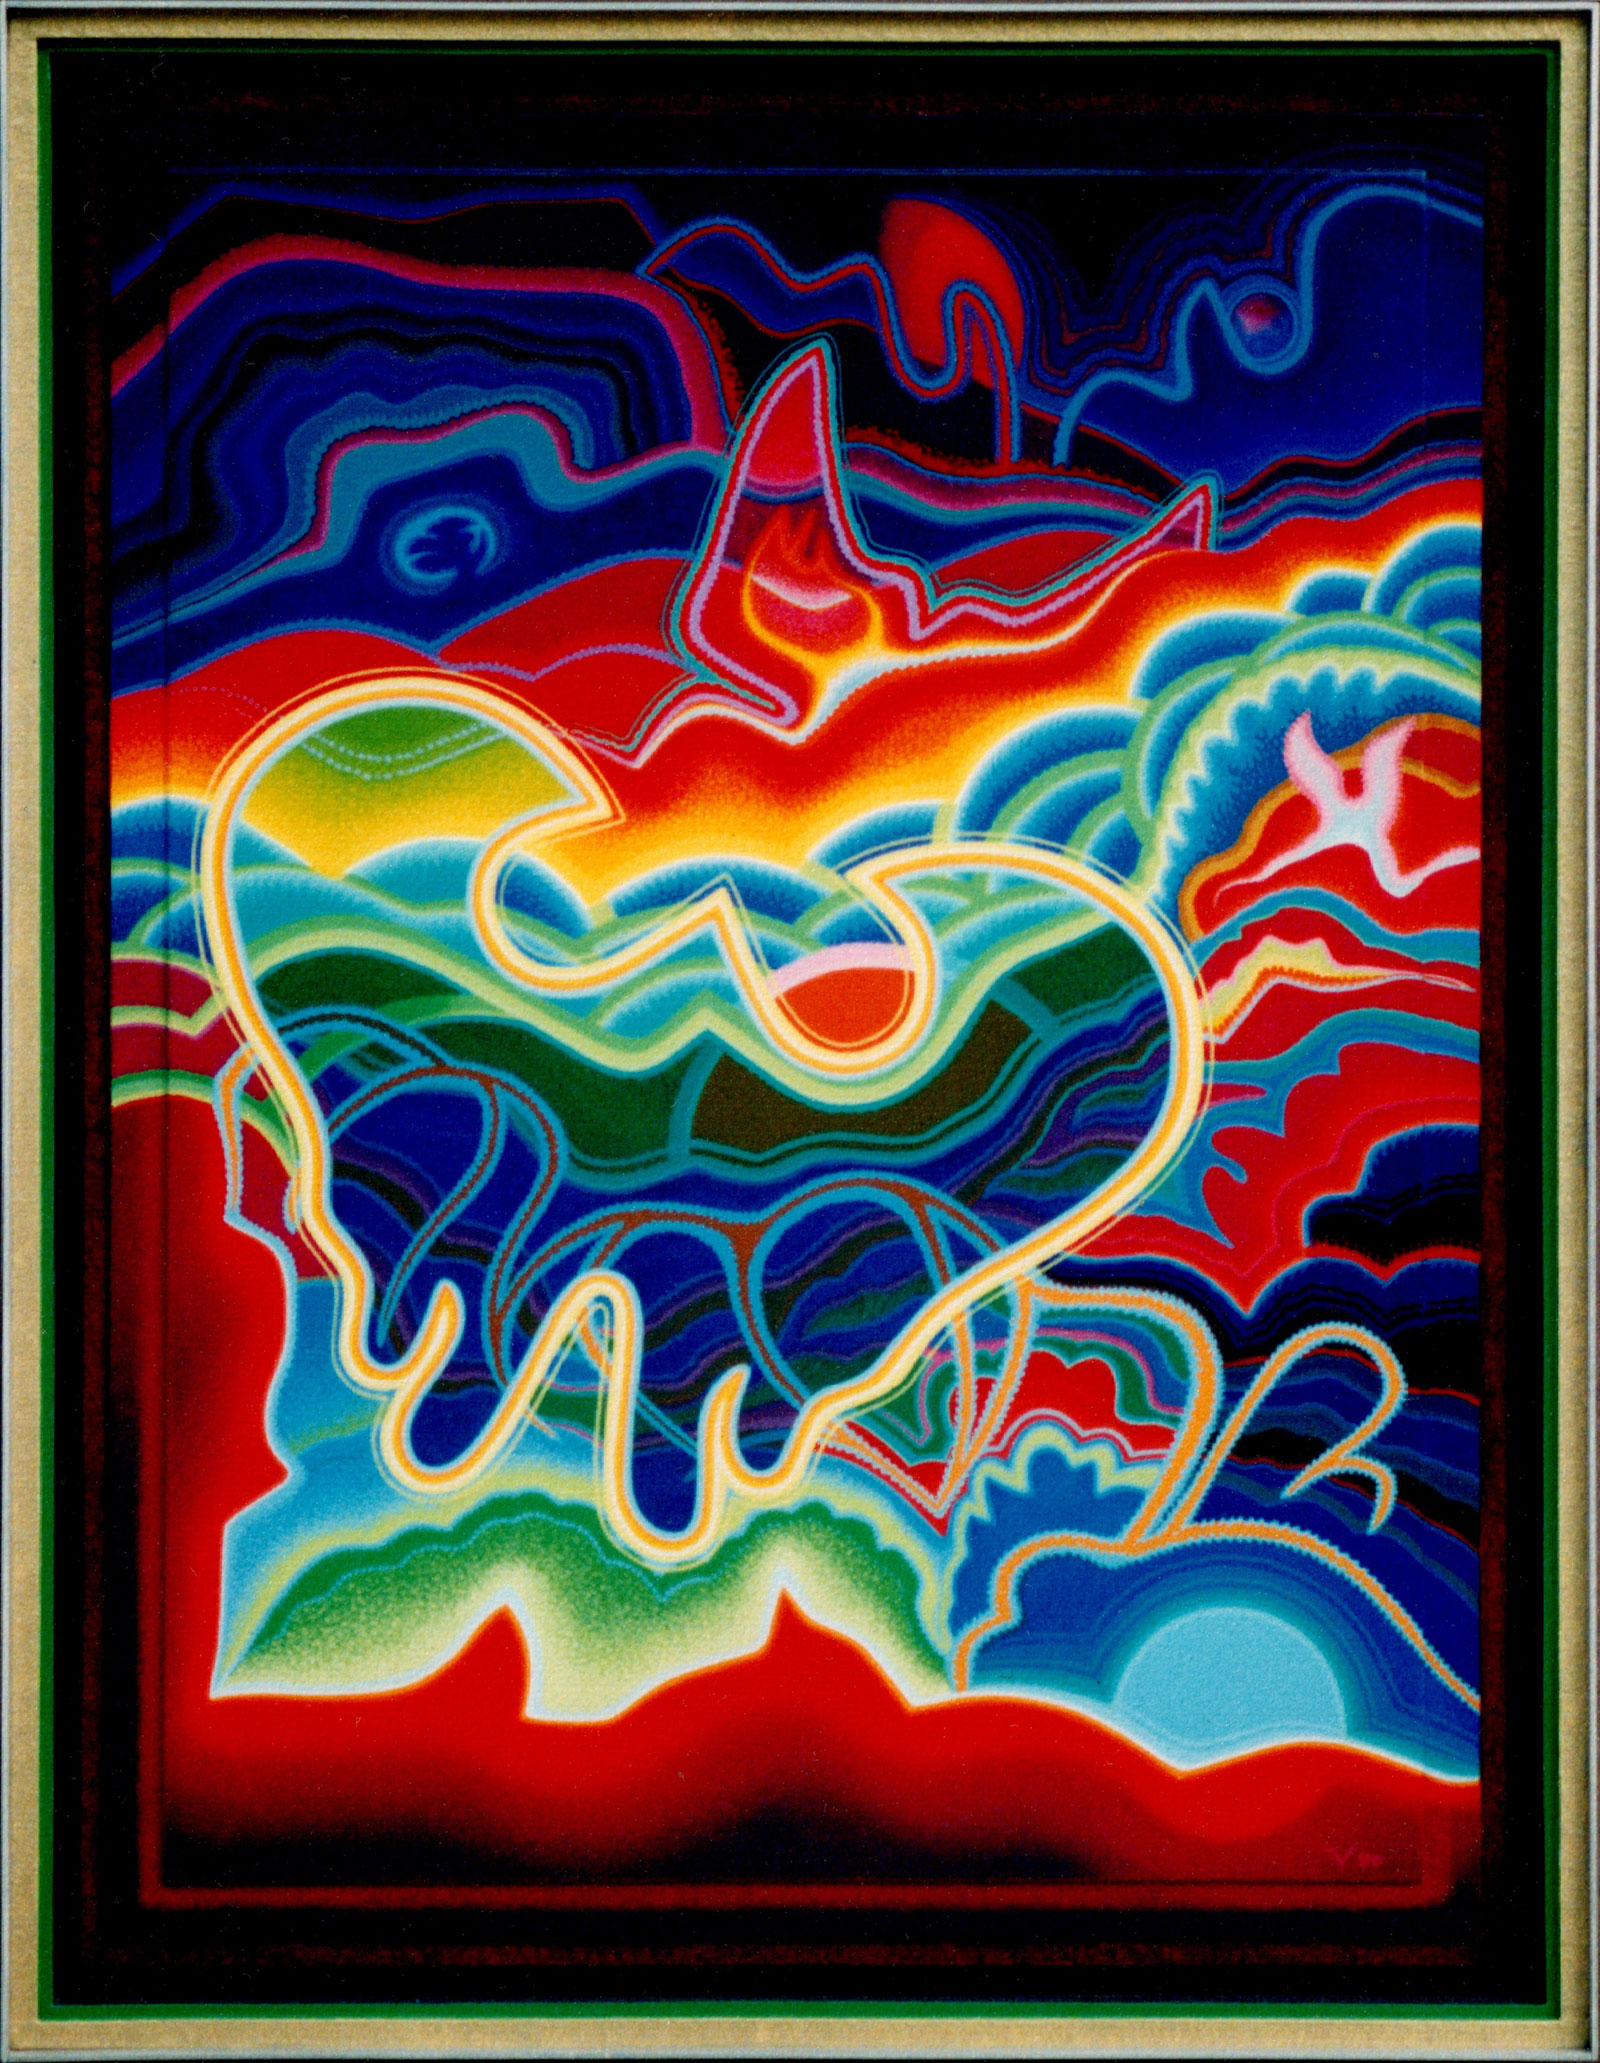 Angels Peak, Acrylic, 1990, 35.5x27.5